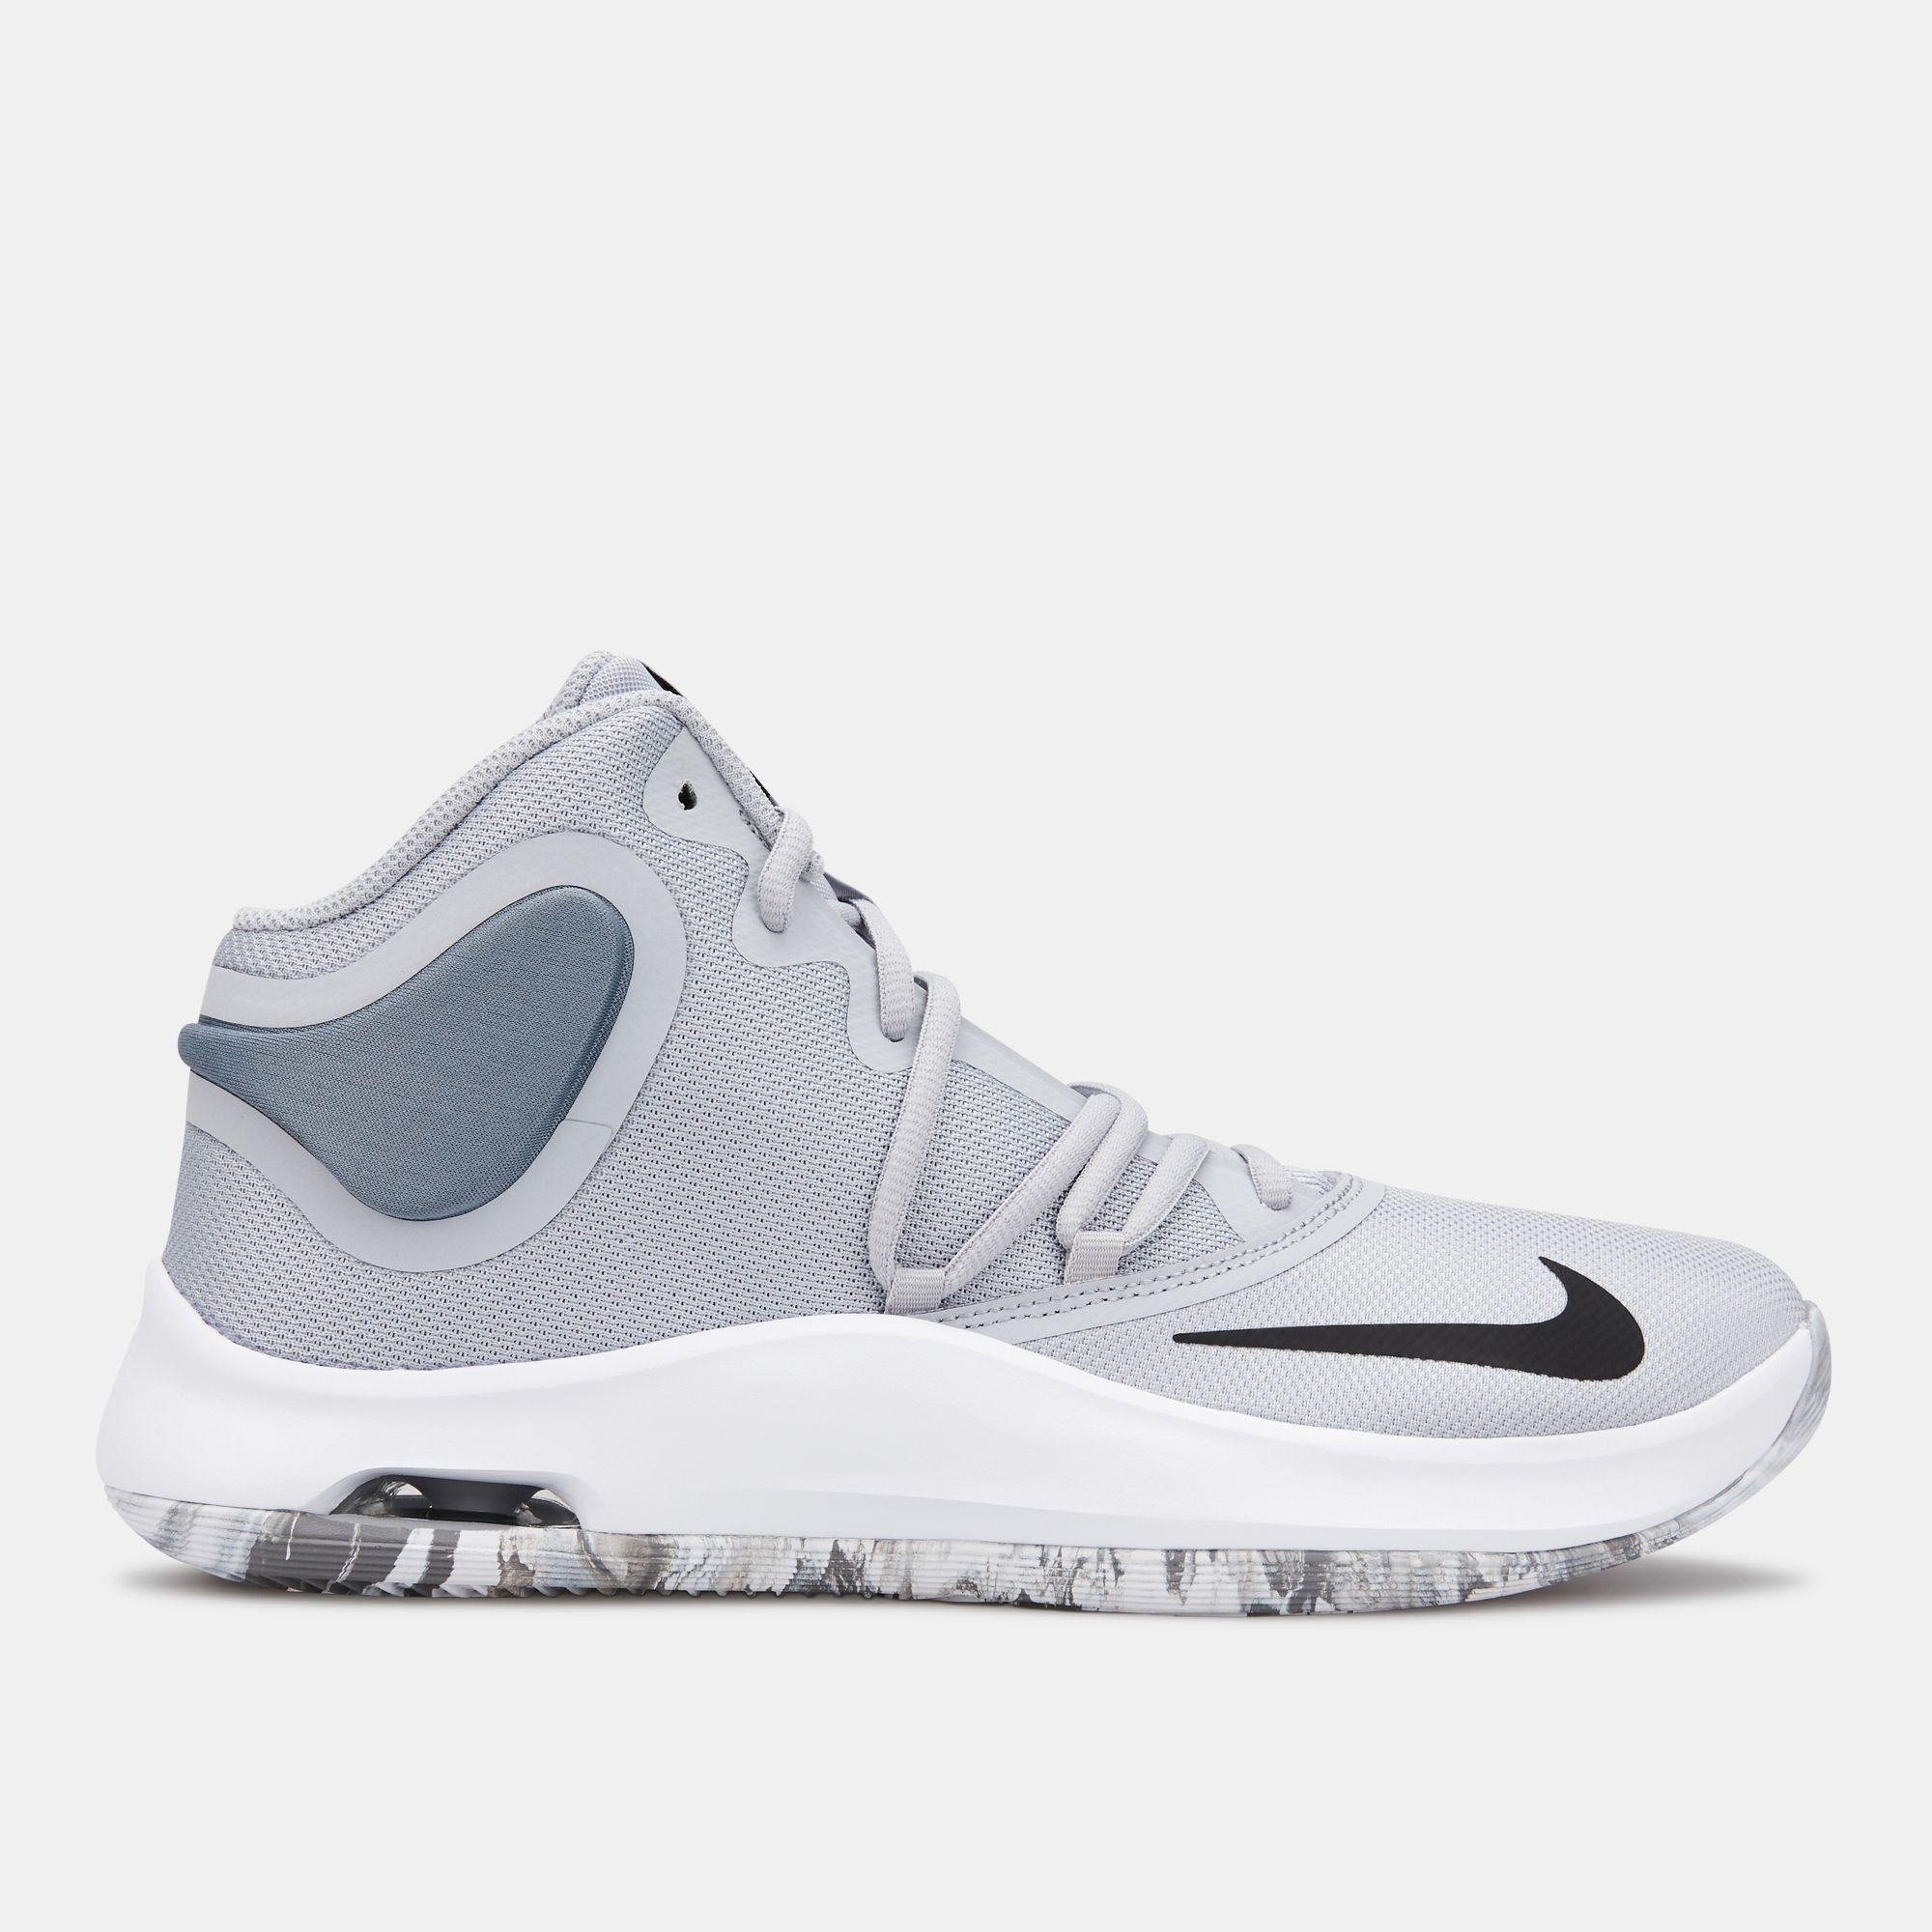 rumor Por ahí Pelearse  Purchase > nike air versatile 4 review, Up to 71% OFF